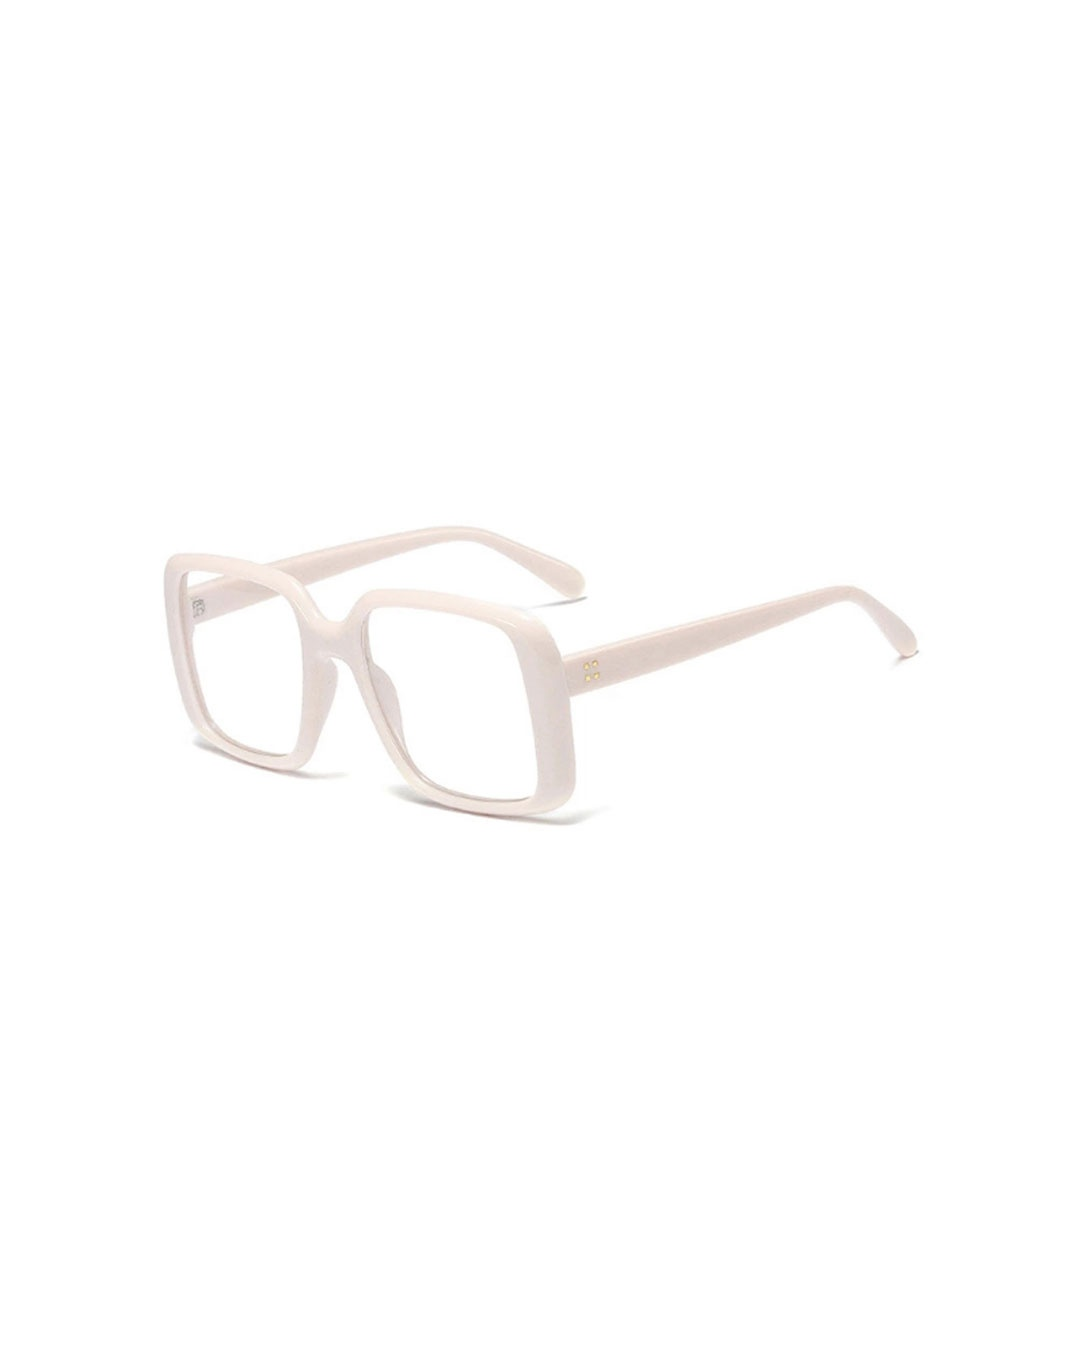 Chelsea-Opticals-White-2